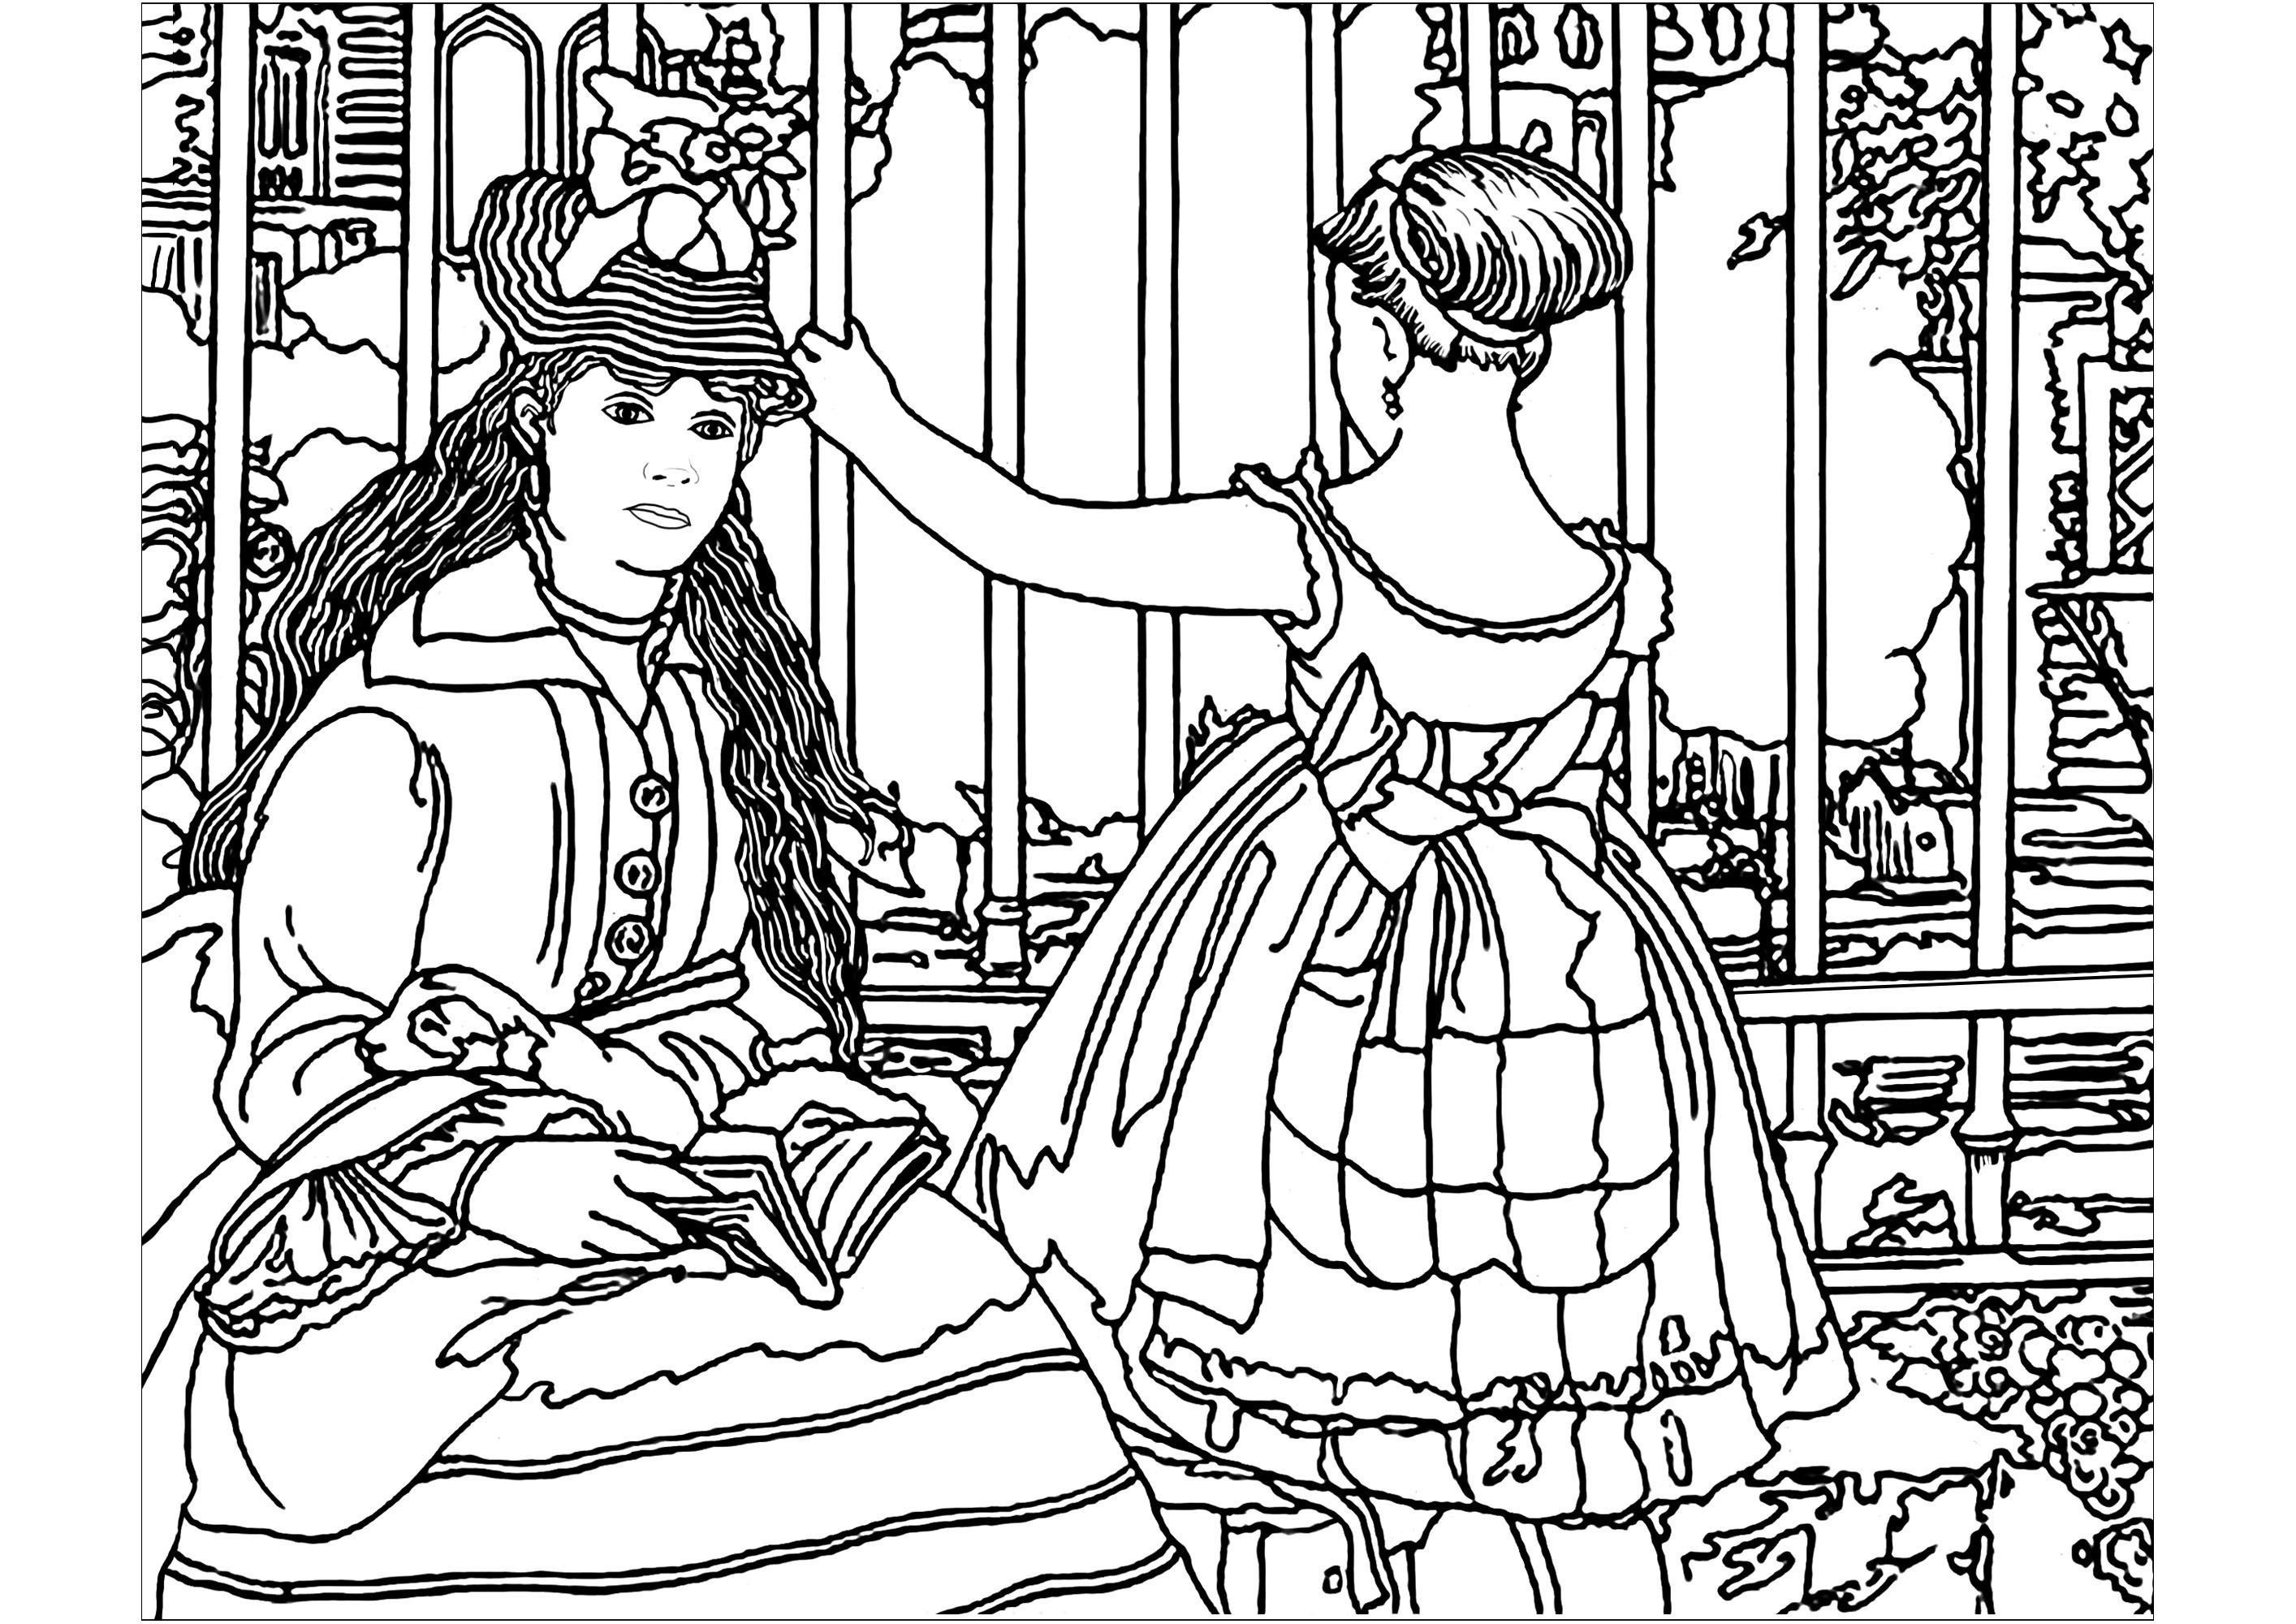 masterpiece coloring pages best collection arcimboldo da colorare disegni da pages masterpiece coloring